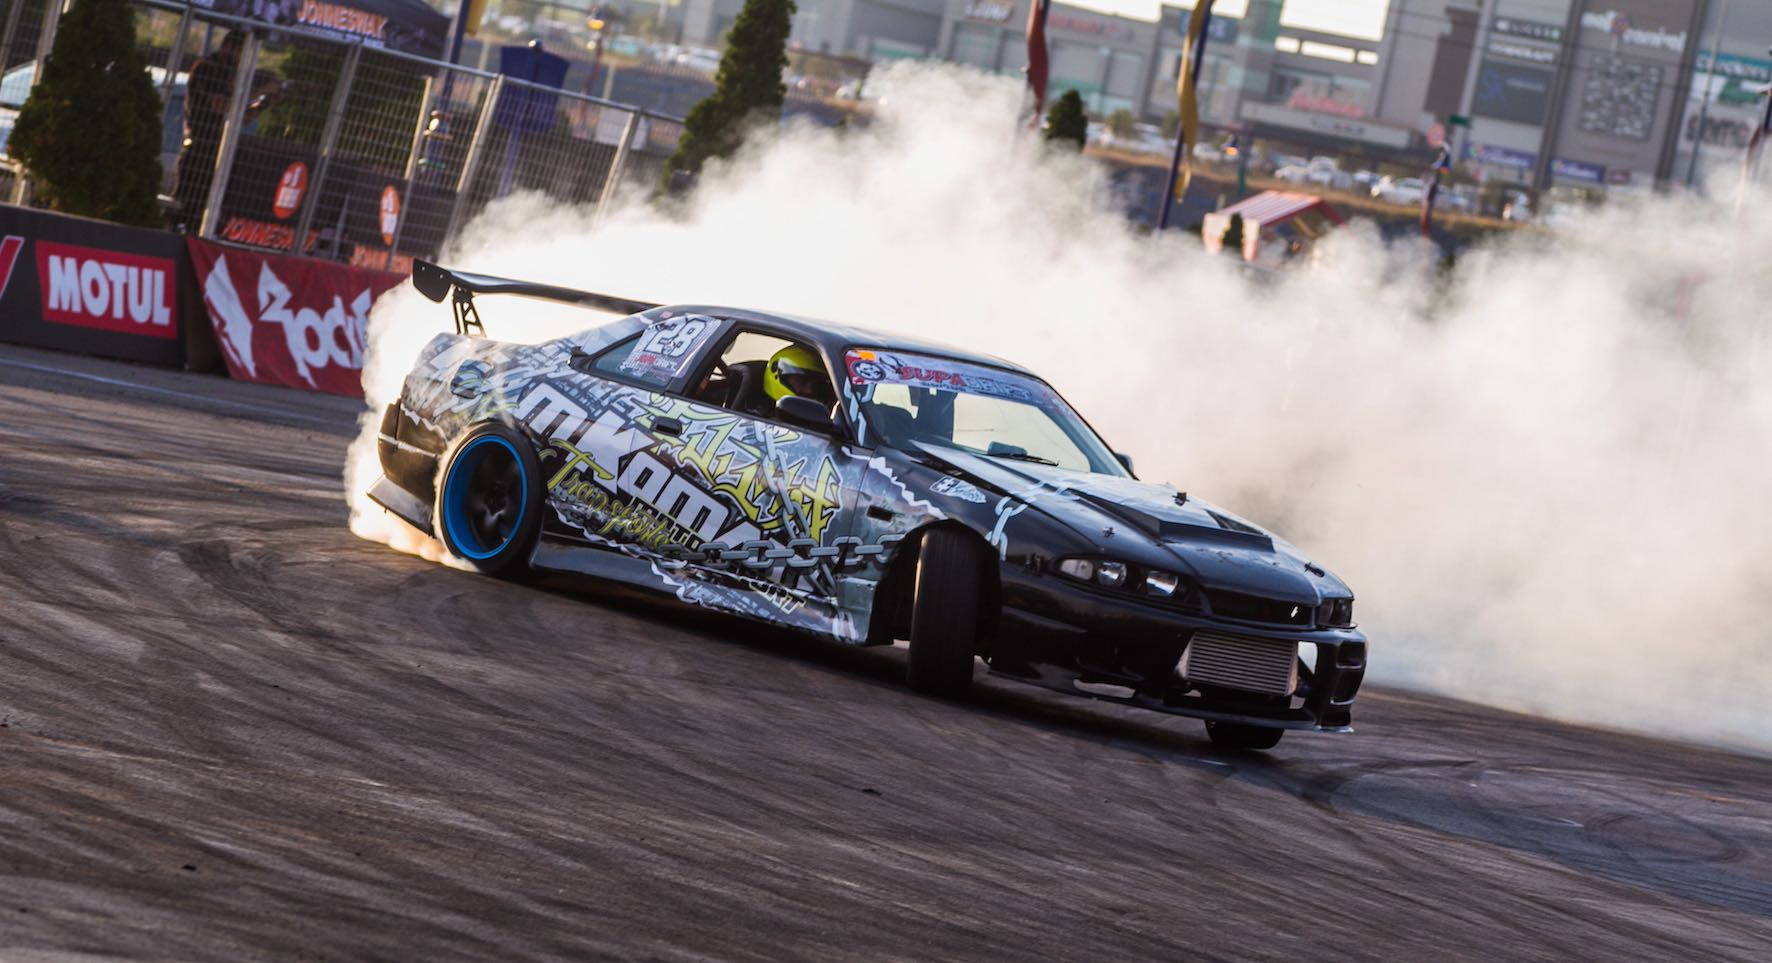 Drifting action from Round 1 of the 2018 SupaDrift Series